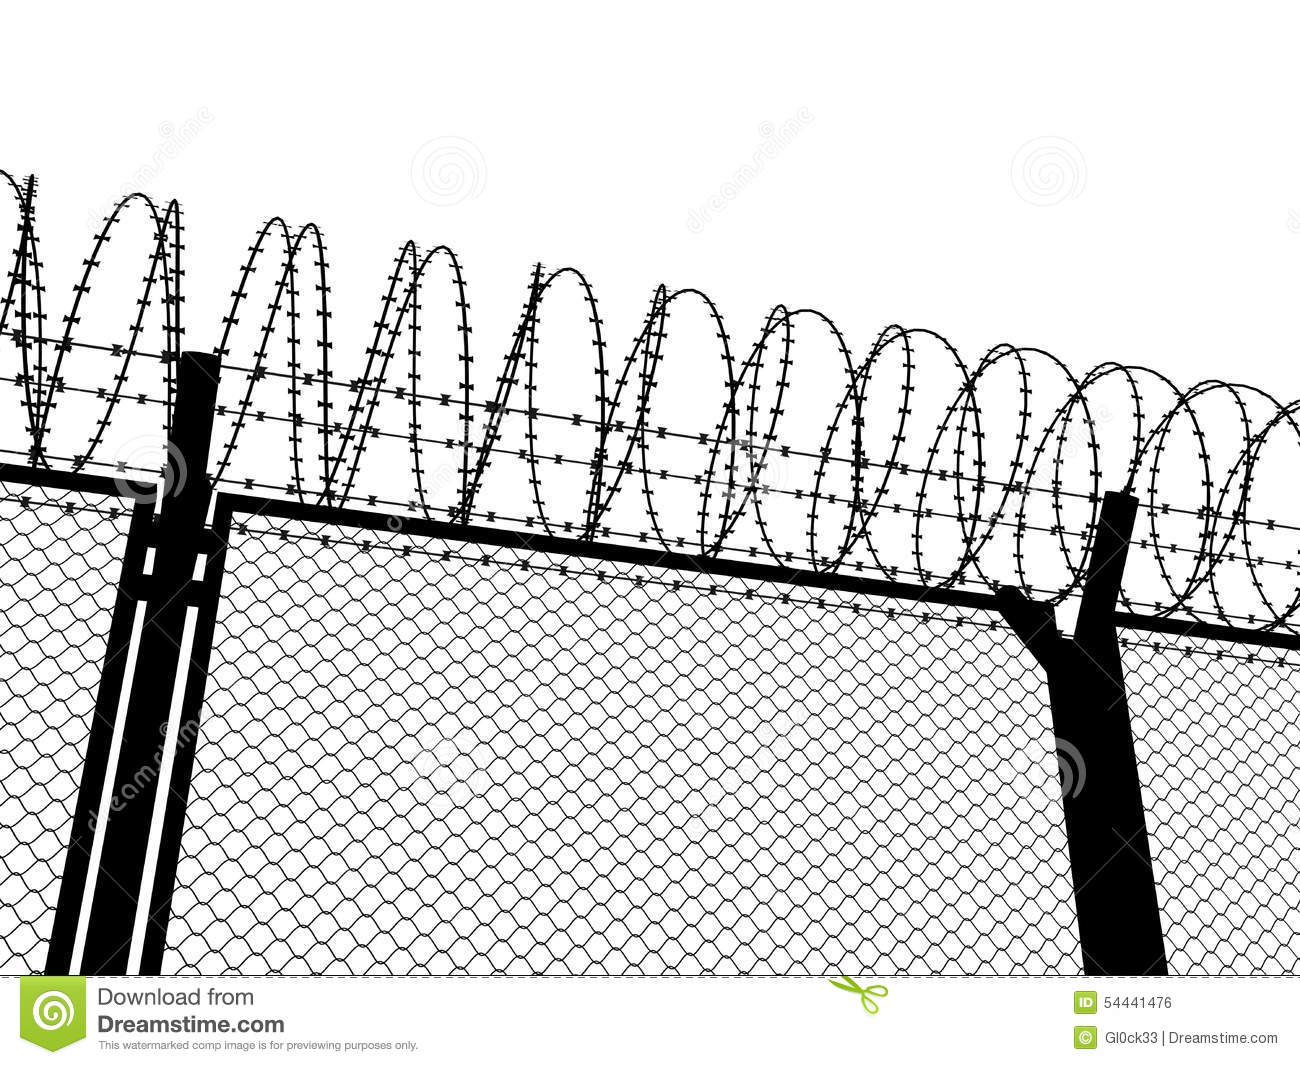 Fence with a barbed wire stock illustration. Illustration of ...